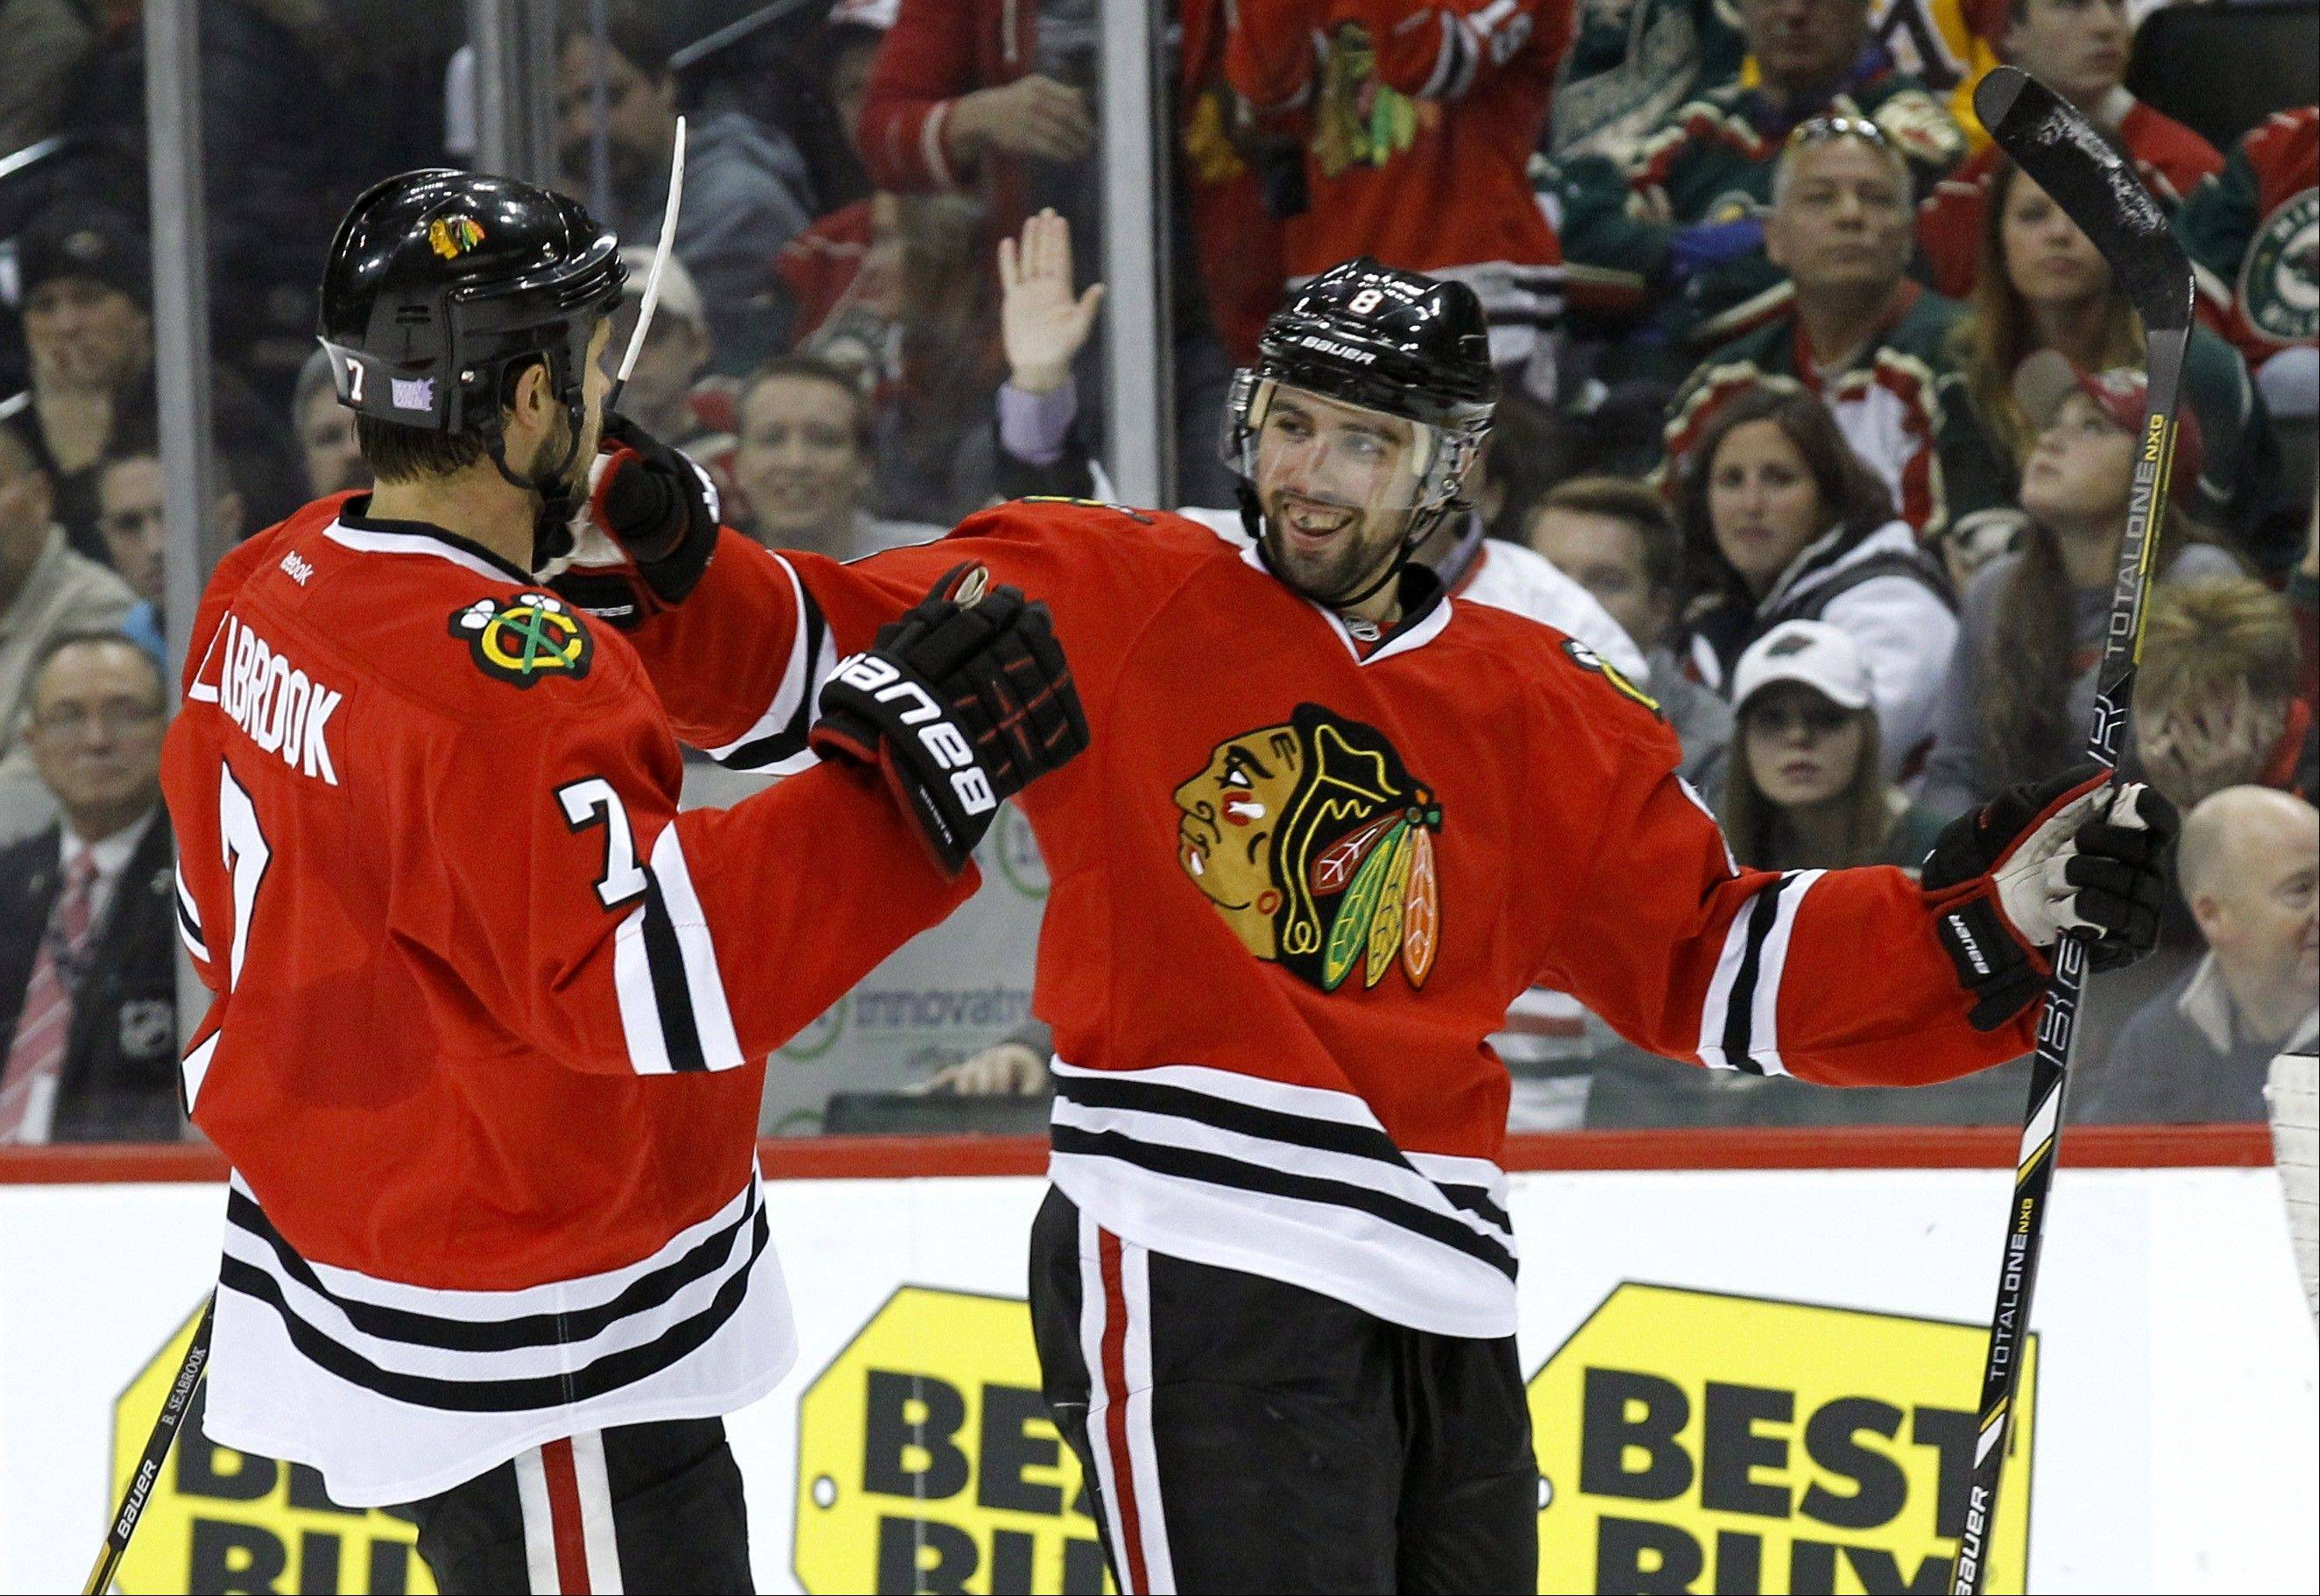 Chicago Blackhawks defenseman Nick Leddy, right, and Chicago Blackhawks defenseman Brent Seabrook, left, celebrate after Leddy's goal on Minnesota Wild goalie Niklas Backstrom during the second period of an NHL hockey game Monday night in St. Paul , Minn. The Blackhawks beat the Wild 5-1.